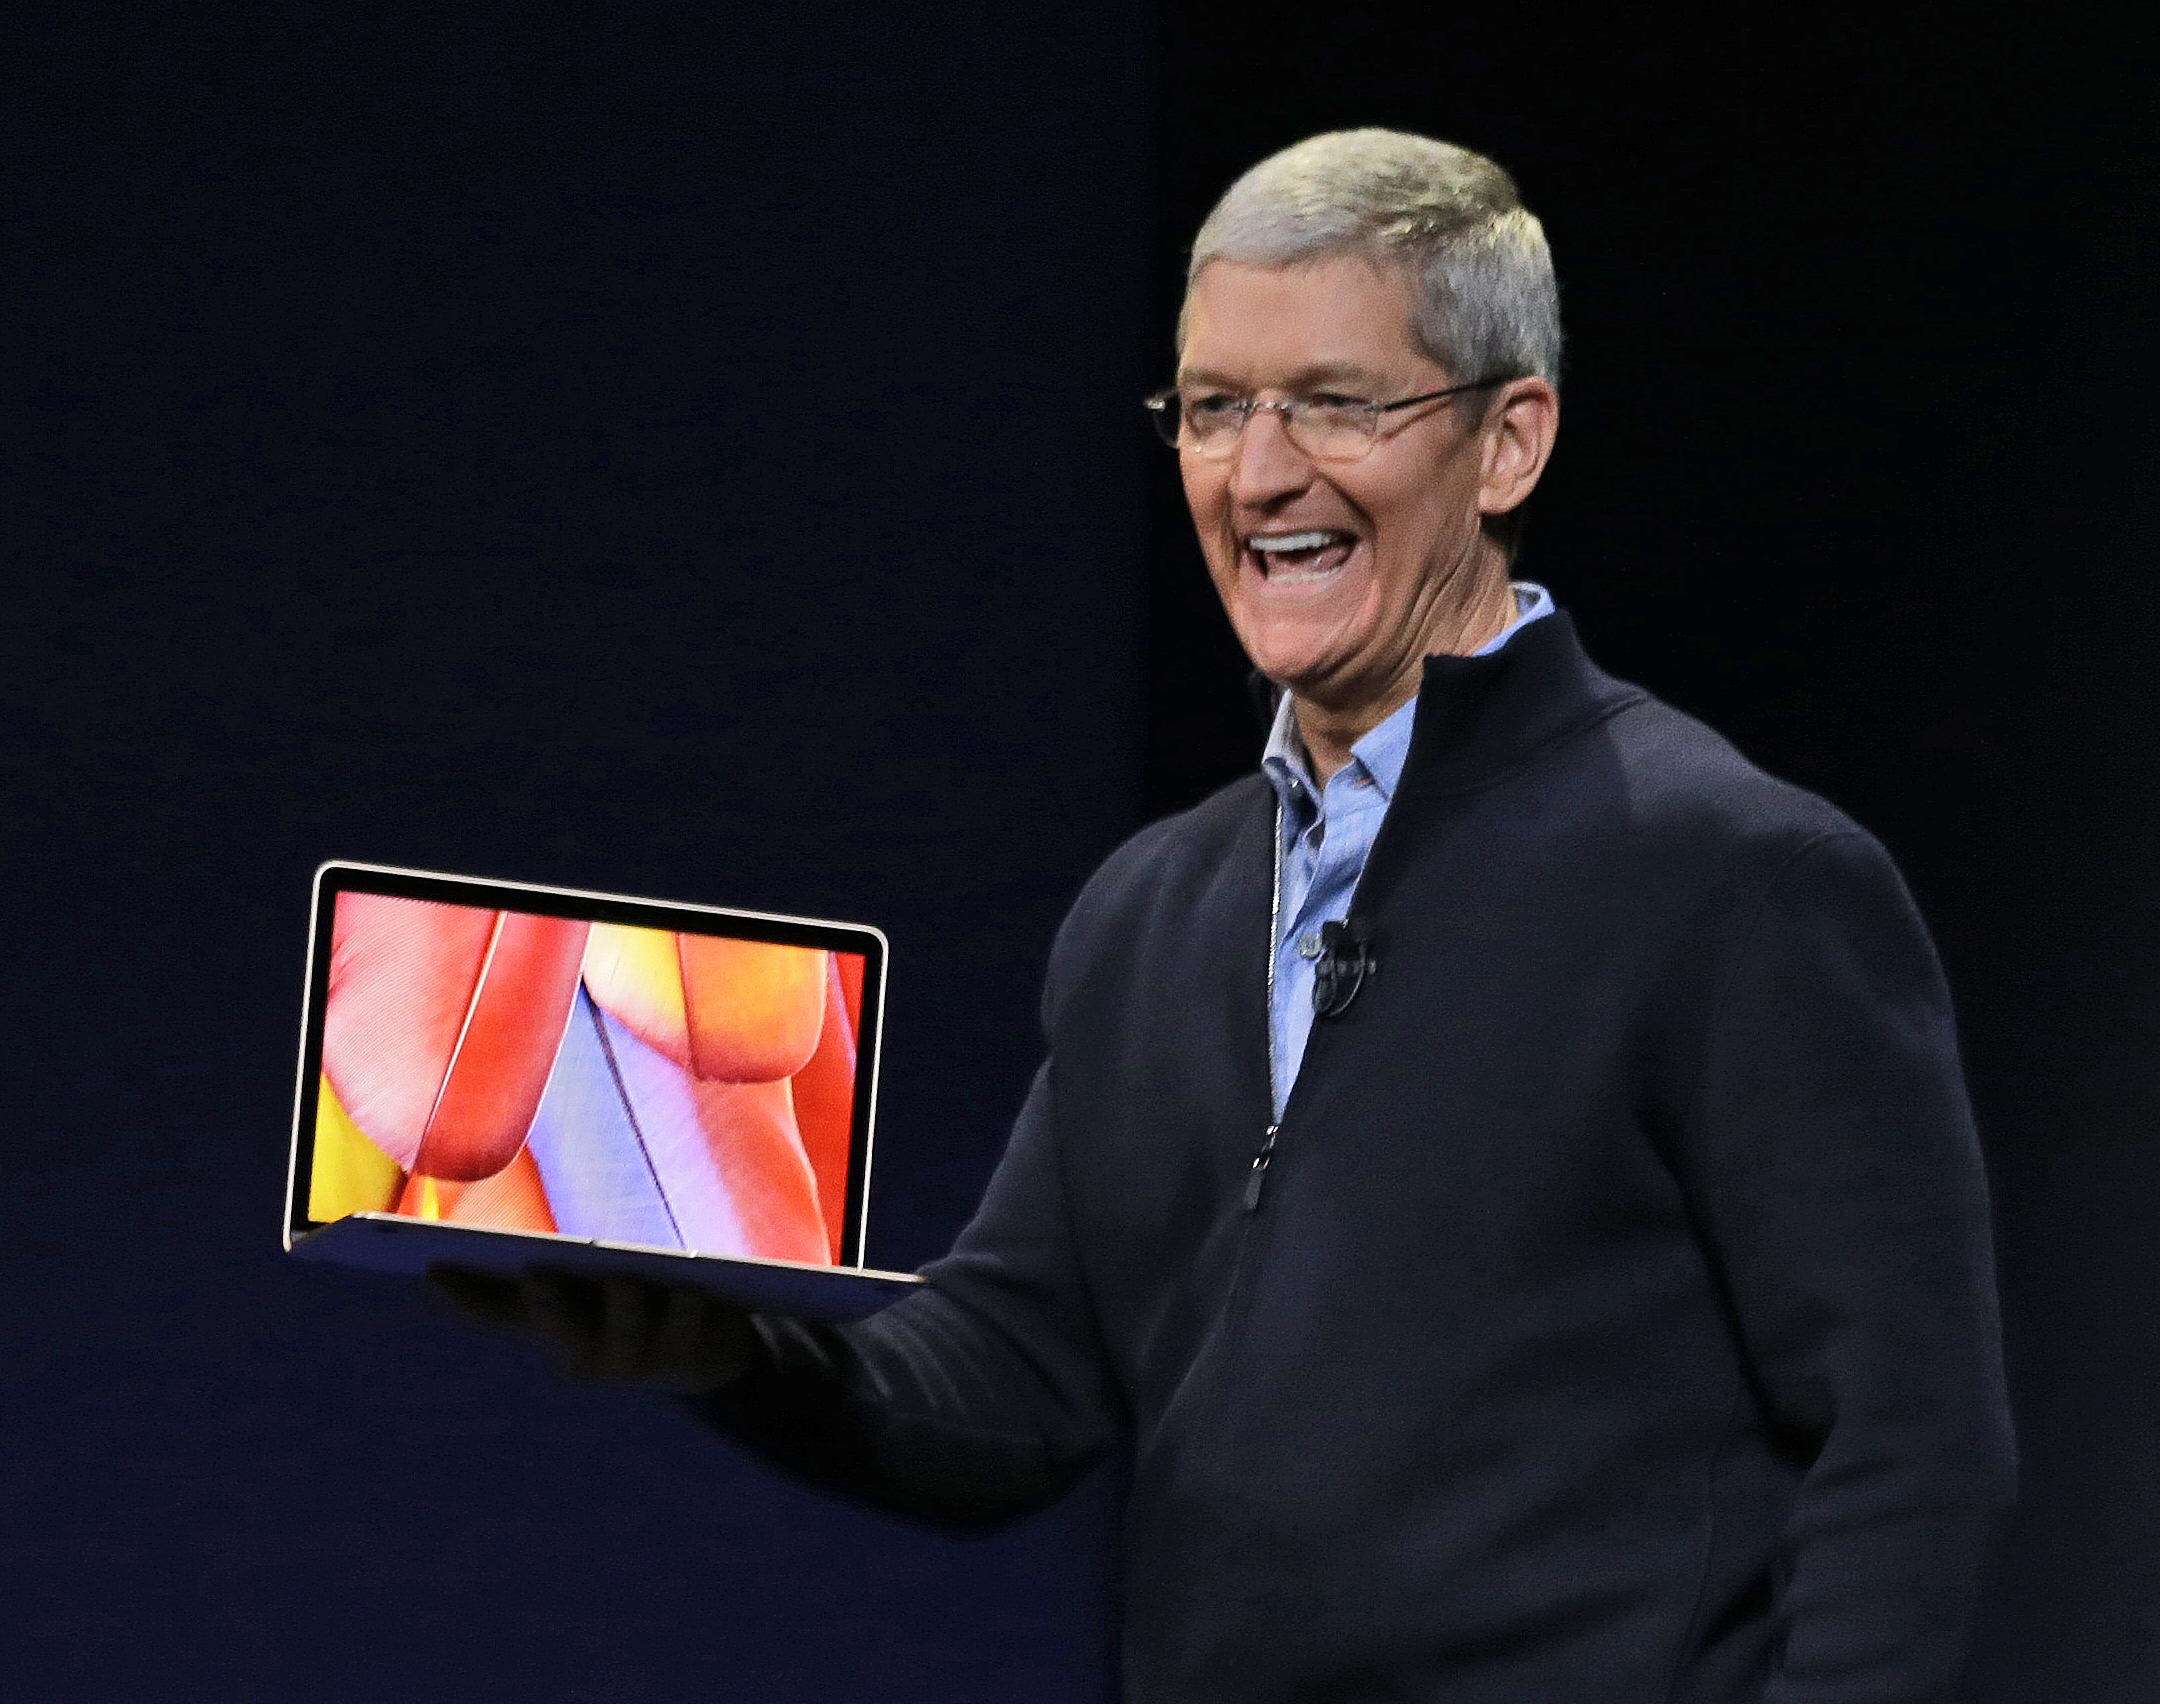 Apple CEO Tim Cook introduces the new Apple MacBook during an Apple event on Monday, March 9, 2015, in San Francisco.